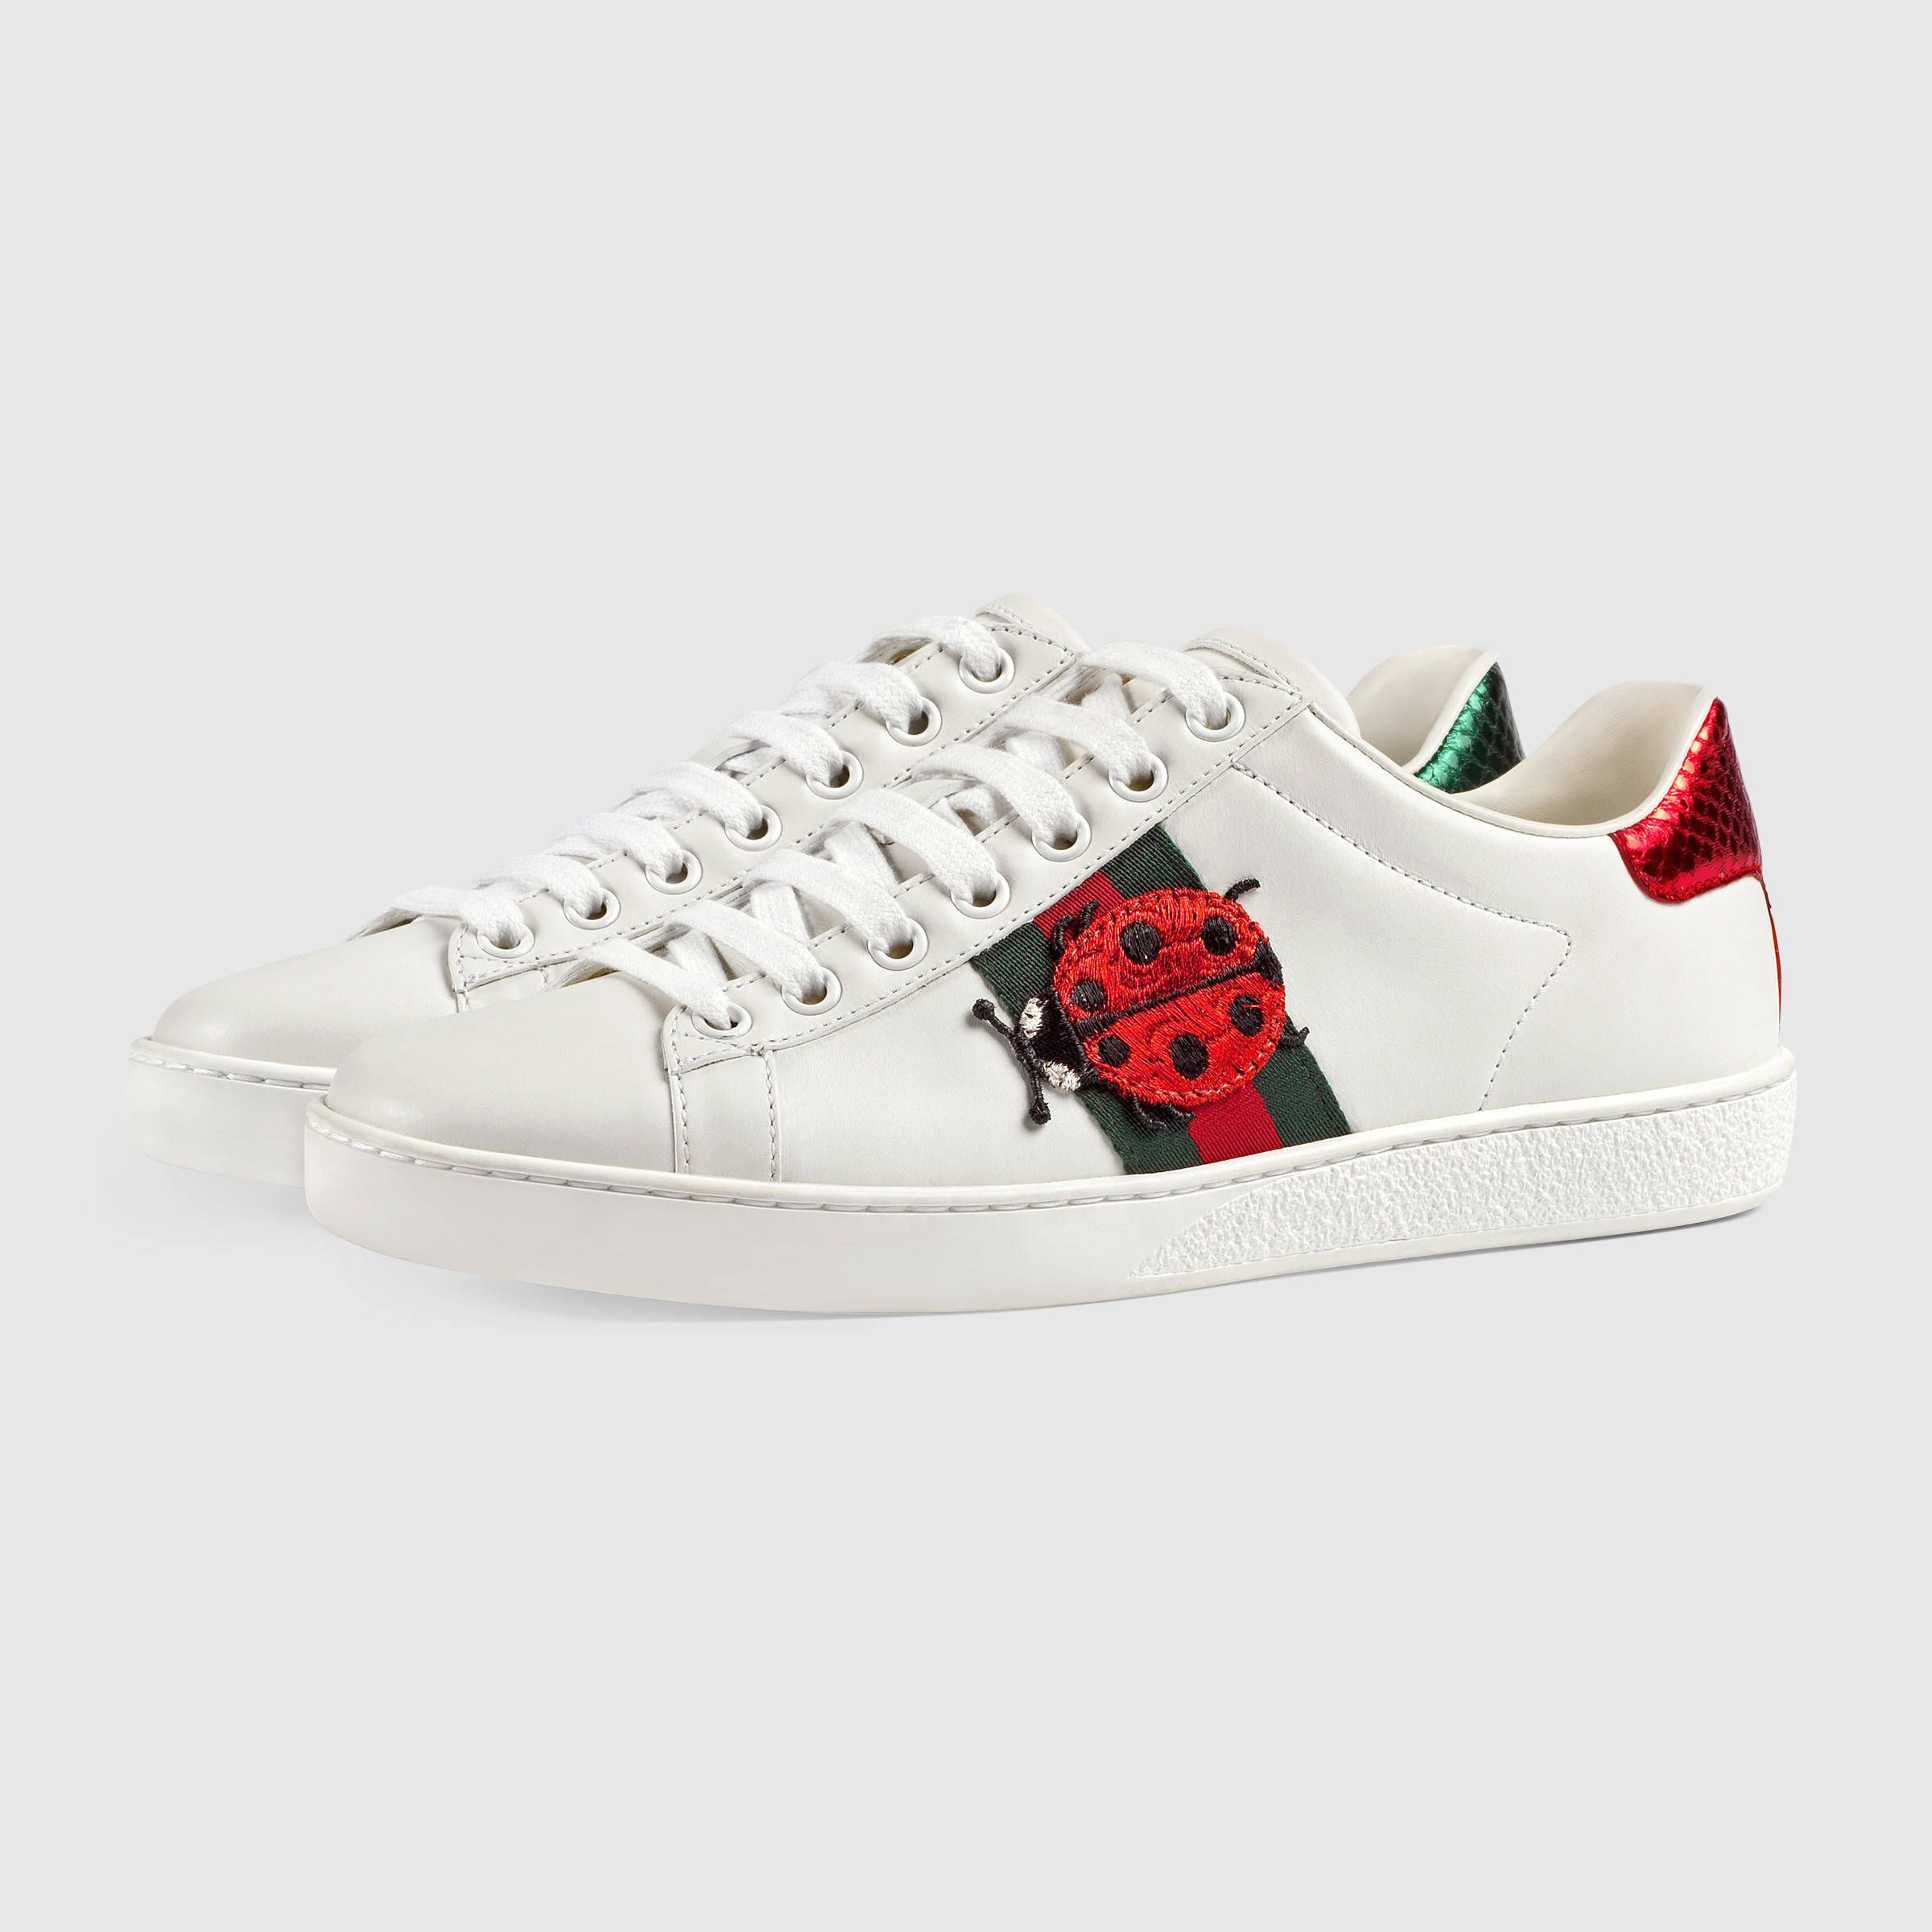 5b292a7c2c67b Gucci Ace embroidered sneaker in 2019 | Walk a mile in my shoes ...